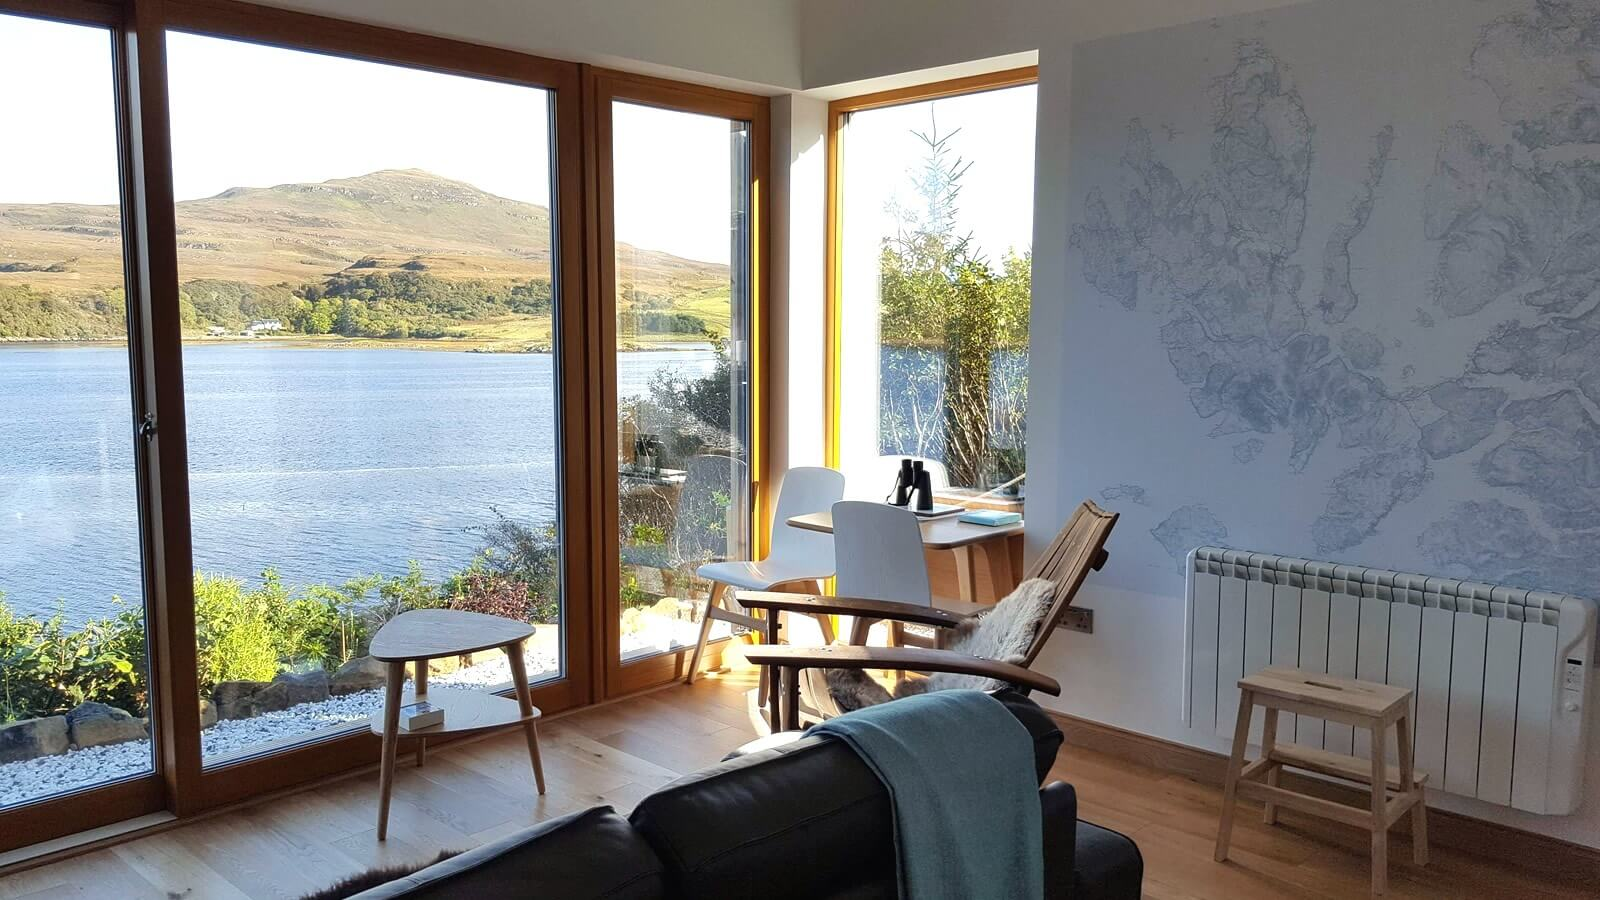 Lounge area with sea view, Skye Self Catering